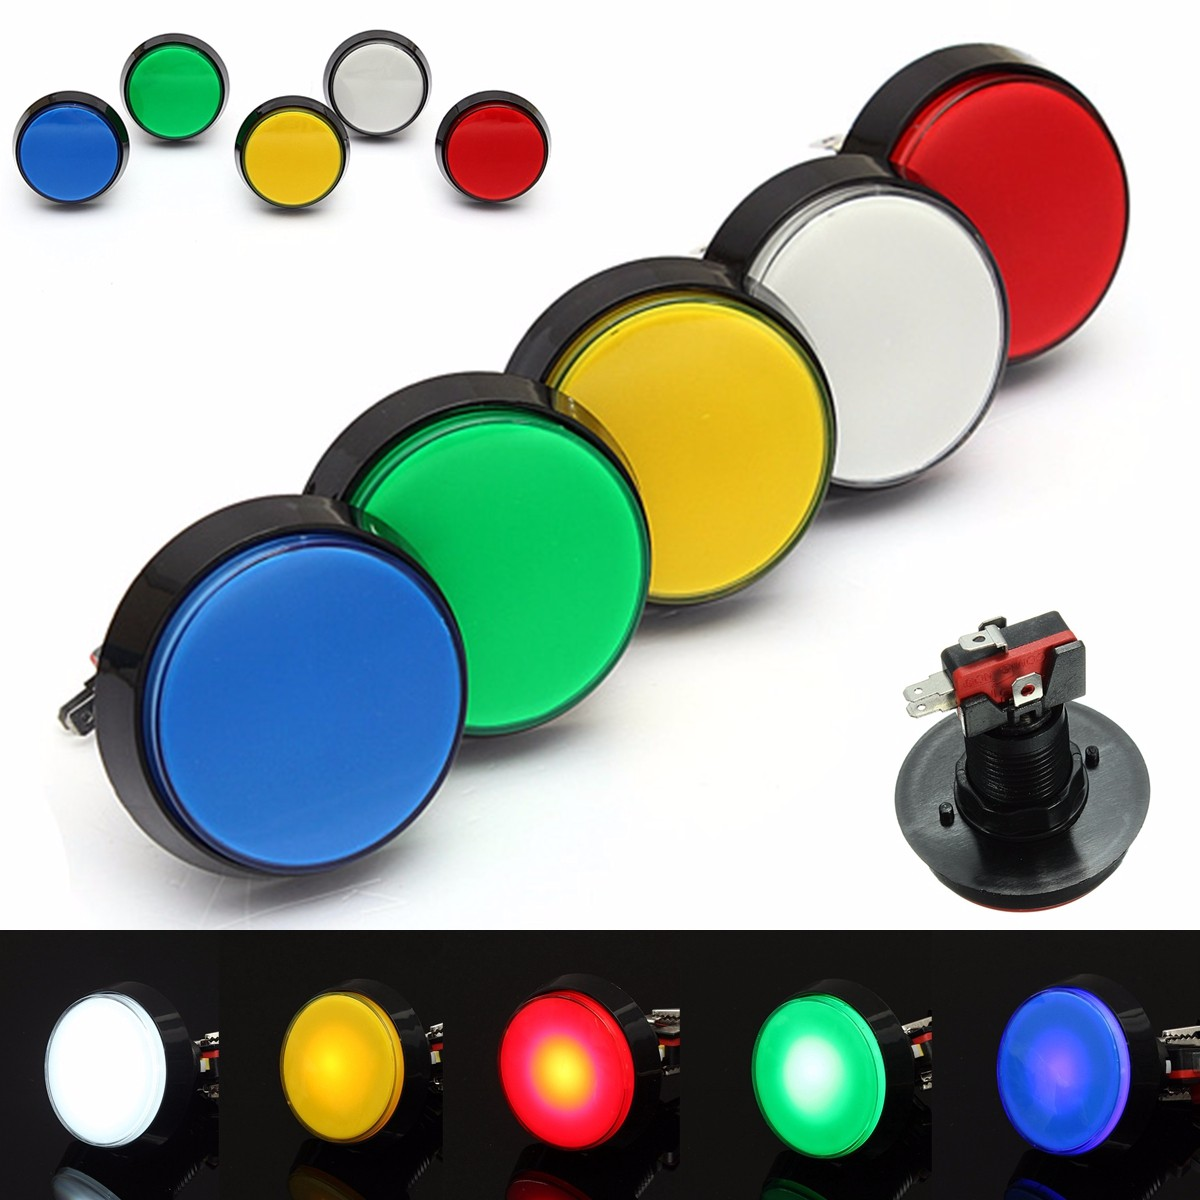 Arcade Button 5 Colors LED Light Lamp 60MM Big Round Arcade Video Game Player Push Button Switch цена